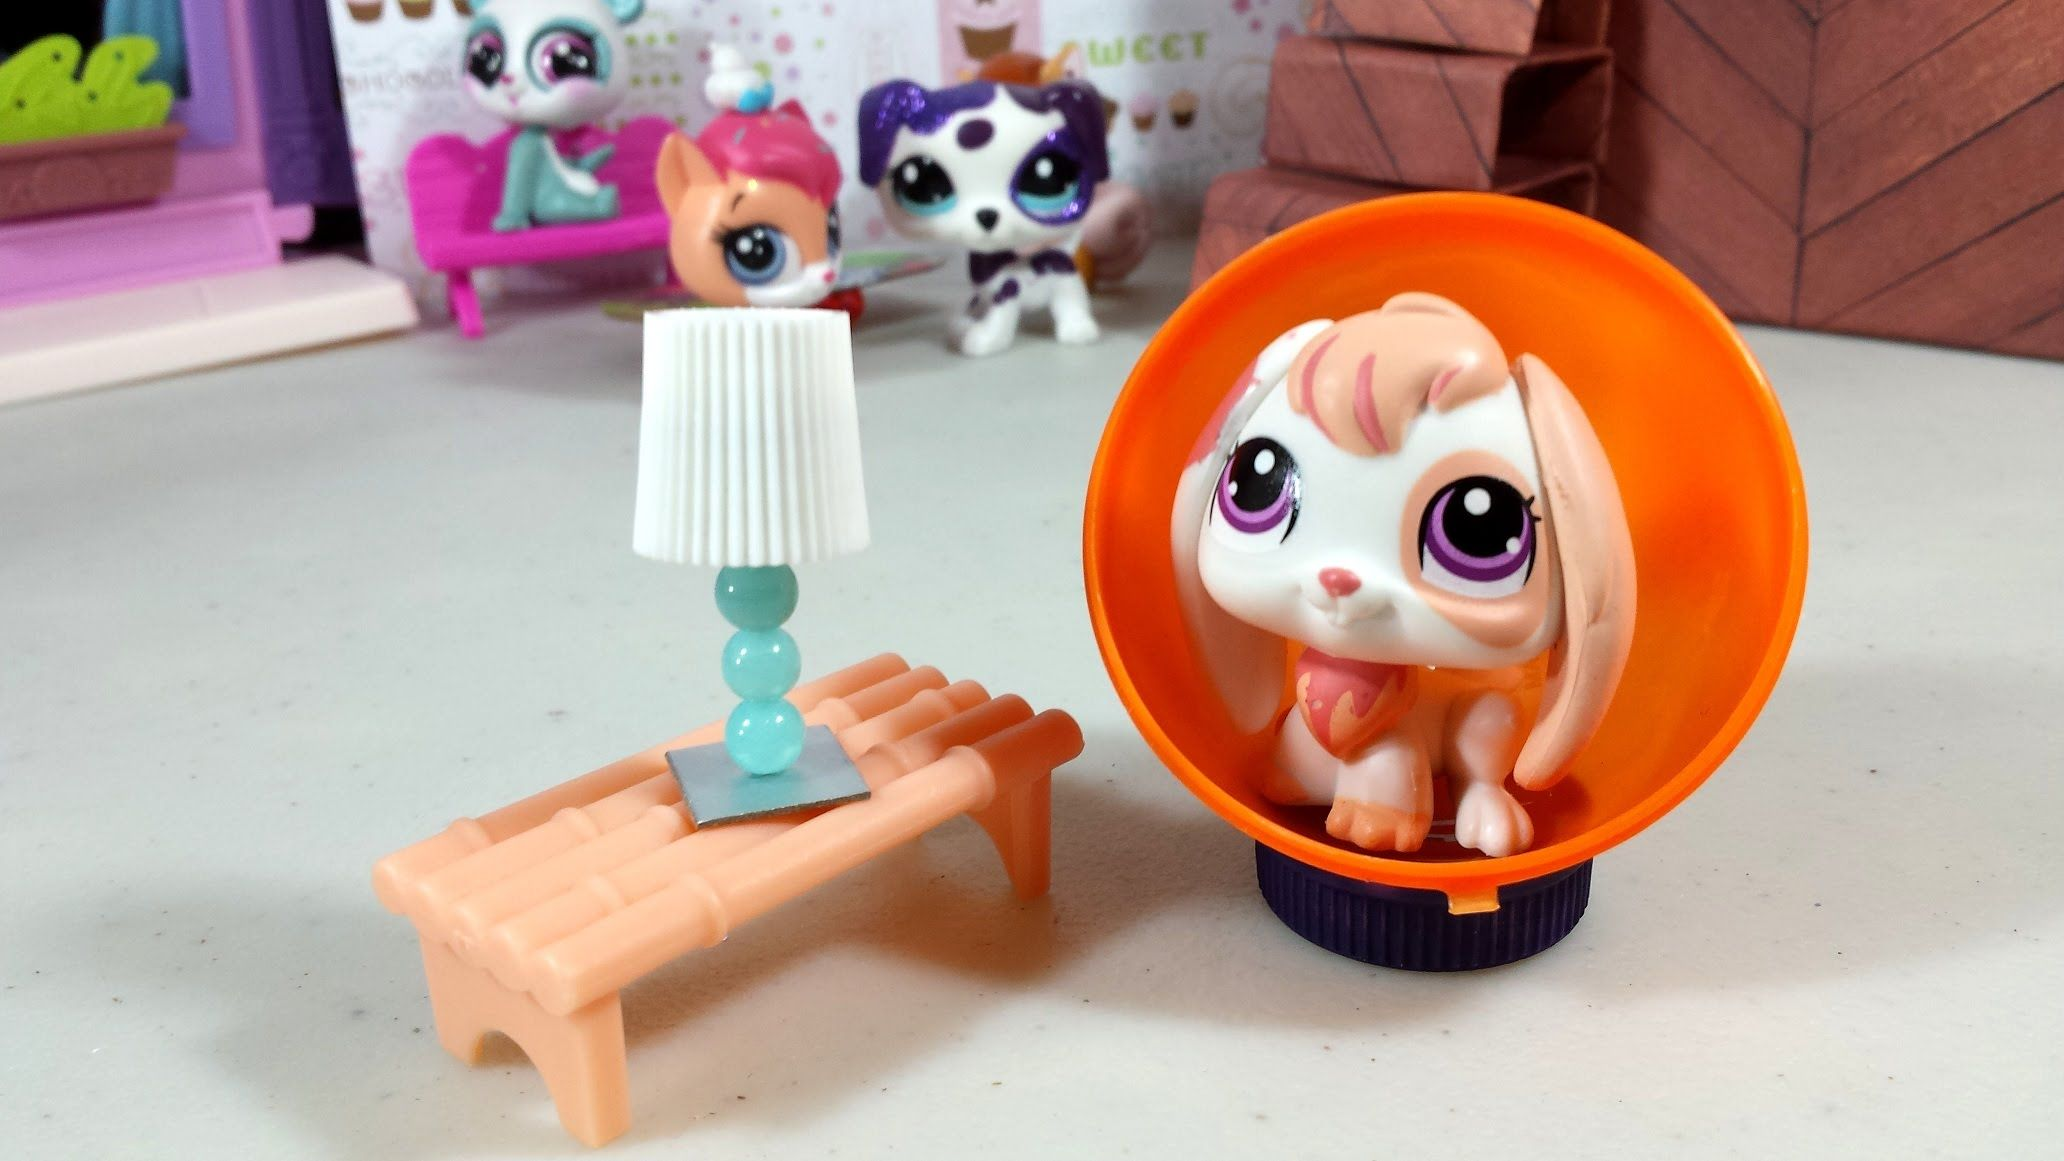 Easy Diy Custom Lps Doll Accessories How To Make A Tiny Lamp Dollhouse Furniture Lps Diy Accessories Diy Dollhouse Doll Furniture Diy